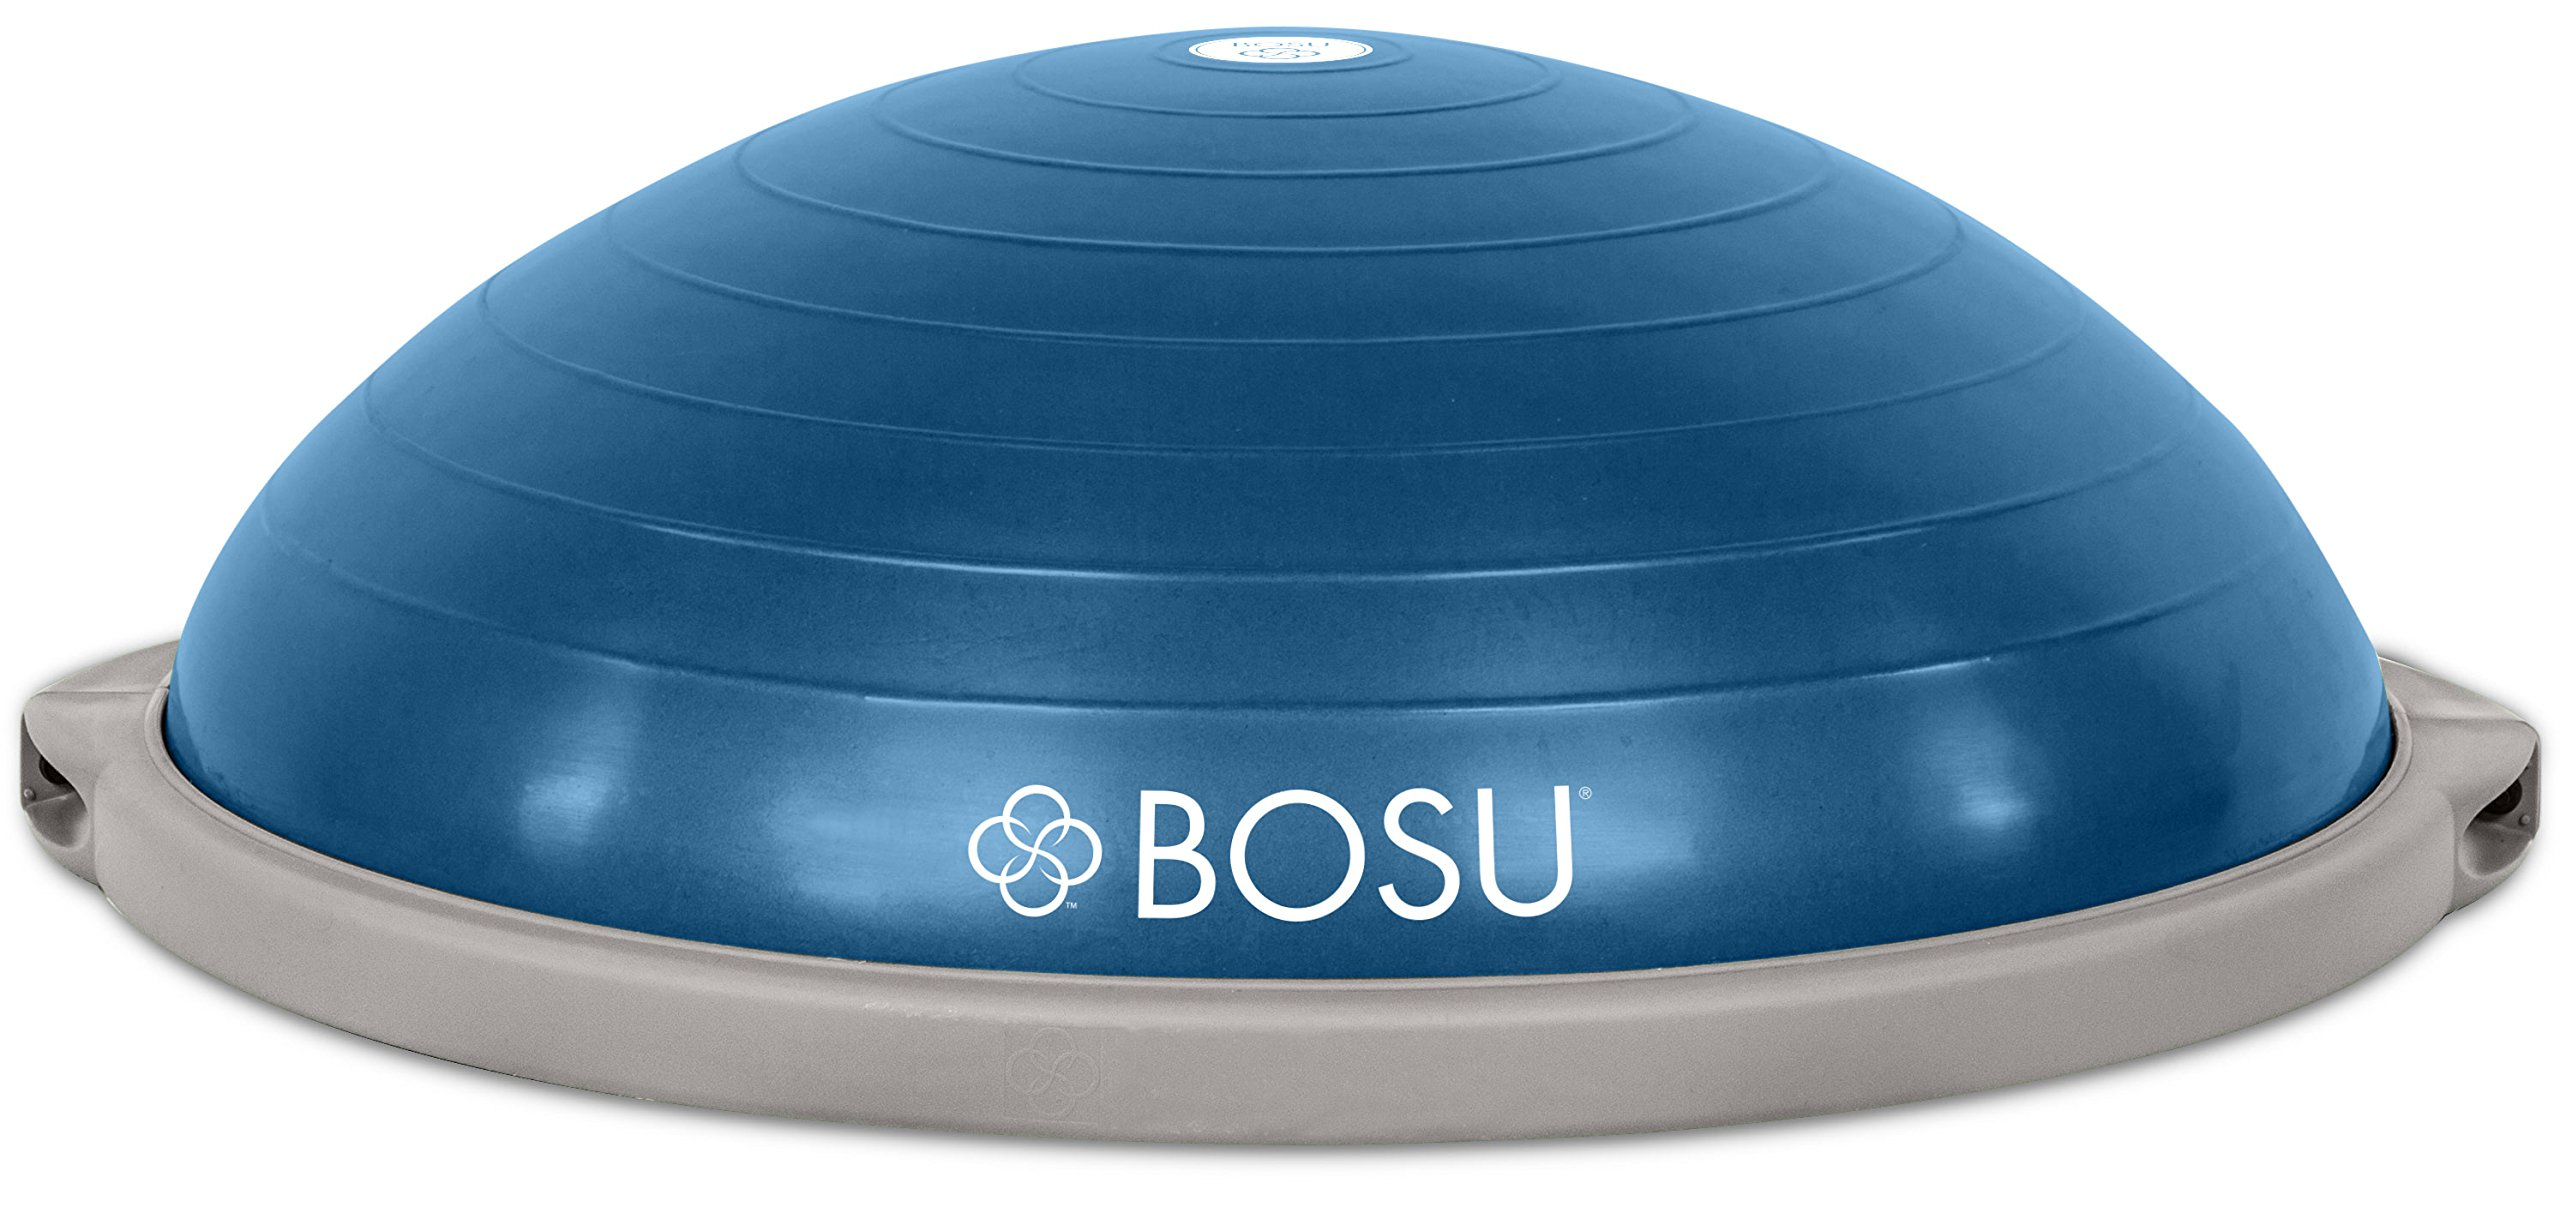 Bosu Balance Trainer, 65cm The Original - Blue/Gray